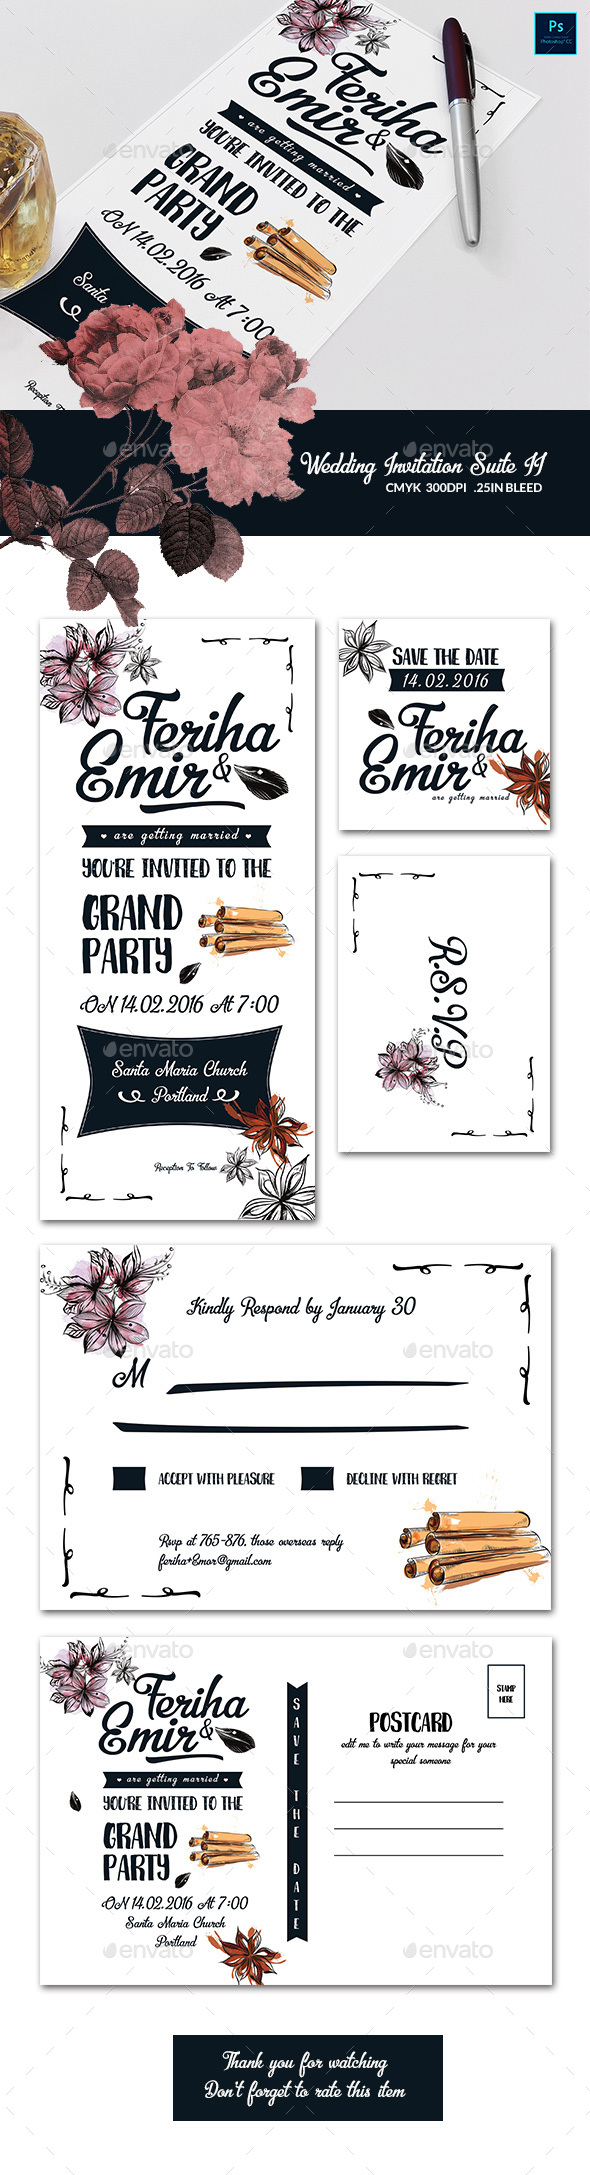 Wedding Invitation Suite II  - Weddings Cards & Invites